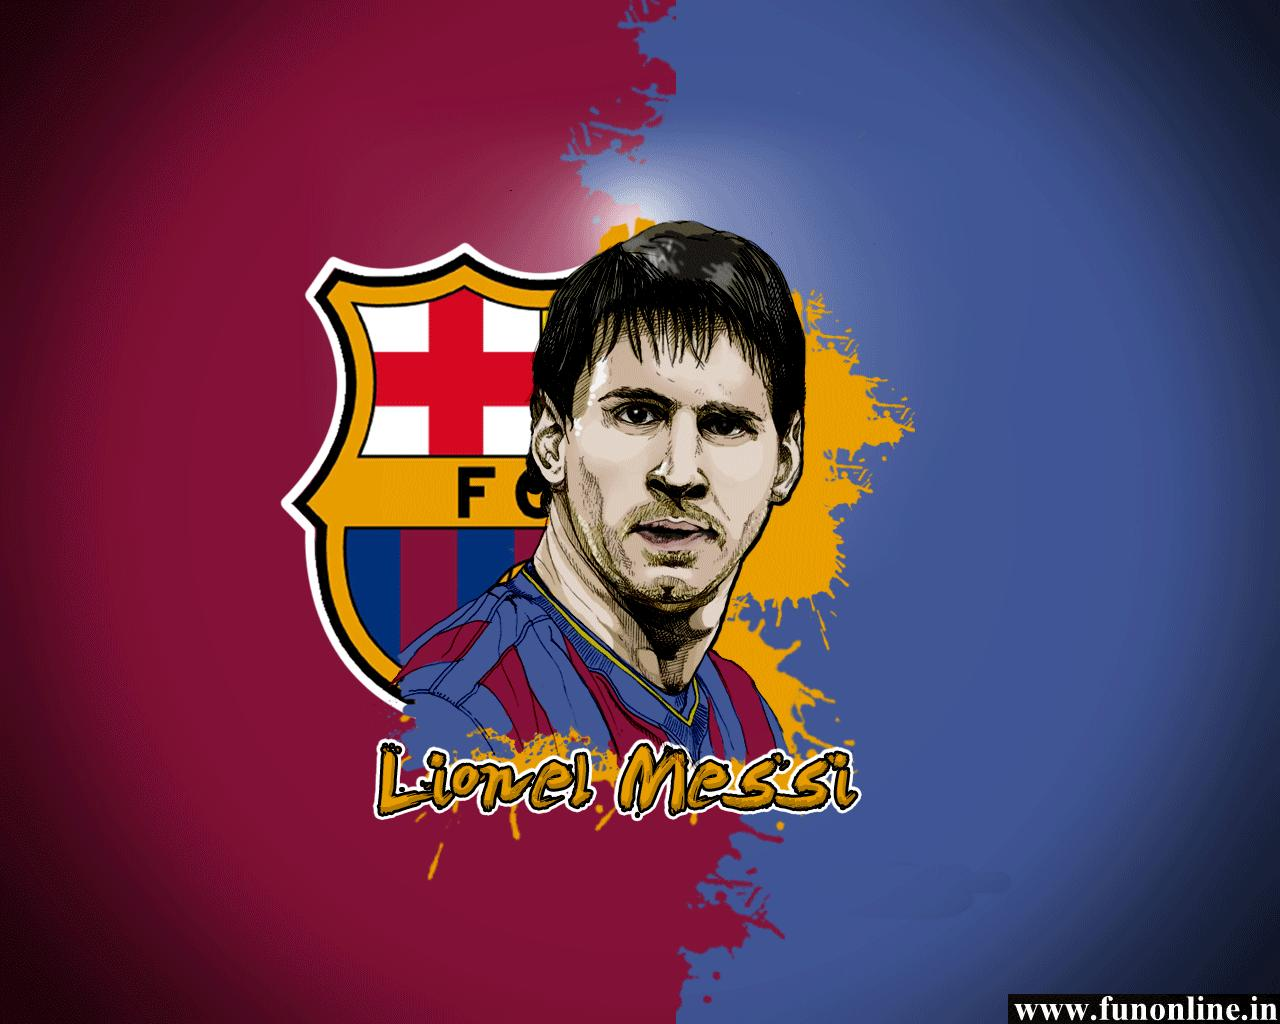 Lionel Messi Wallpapers High Quality  Download Free 1280x1024